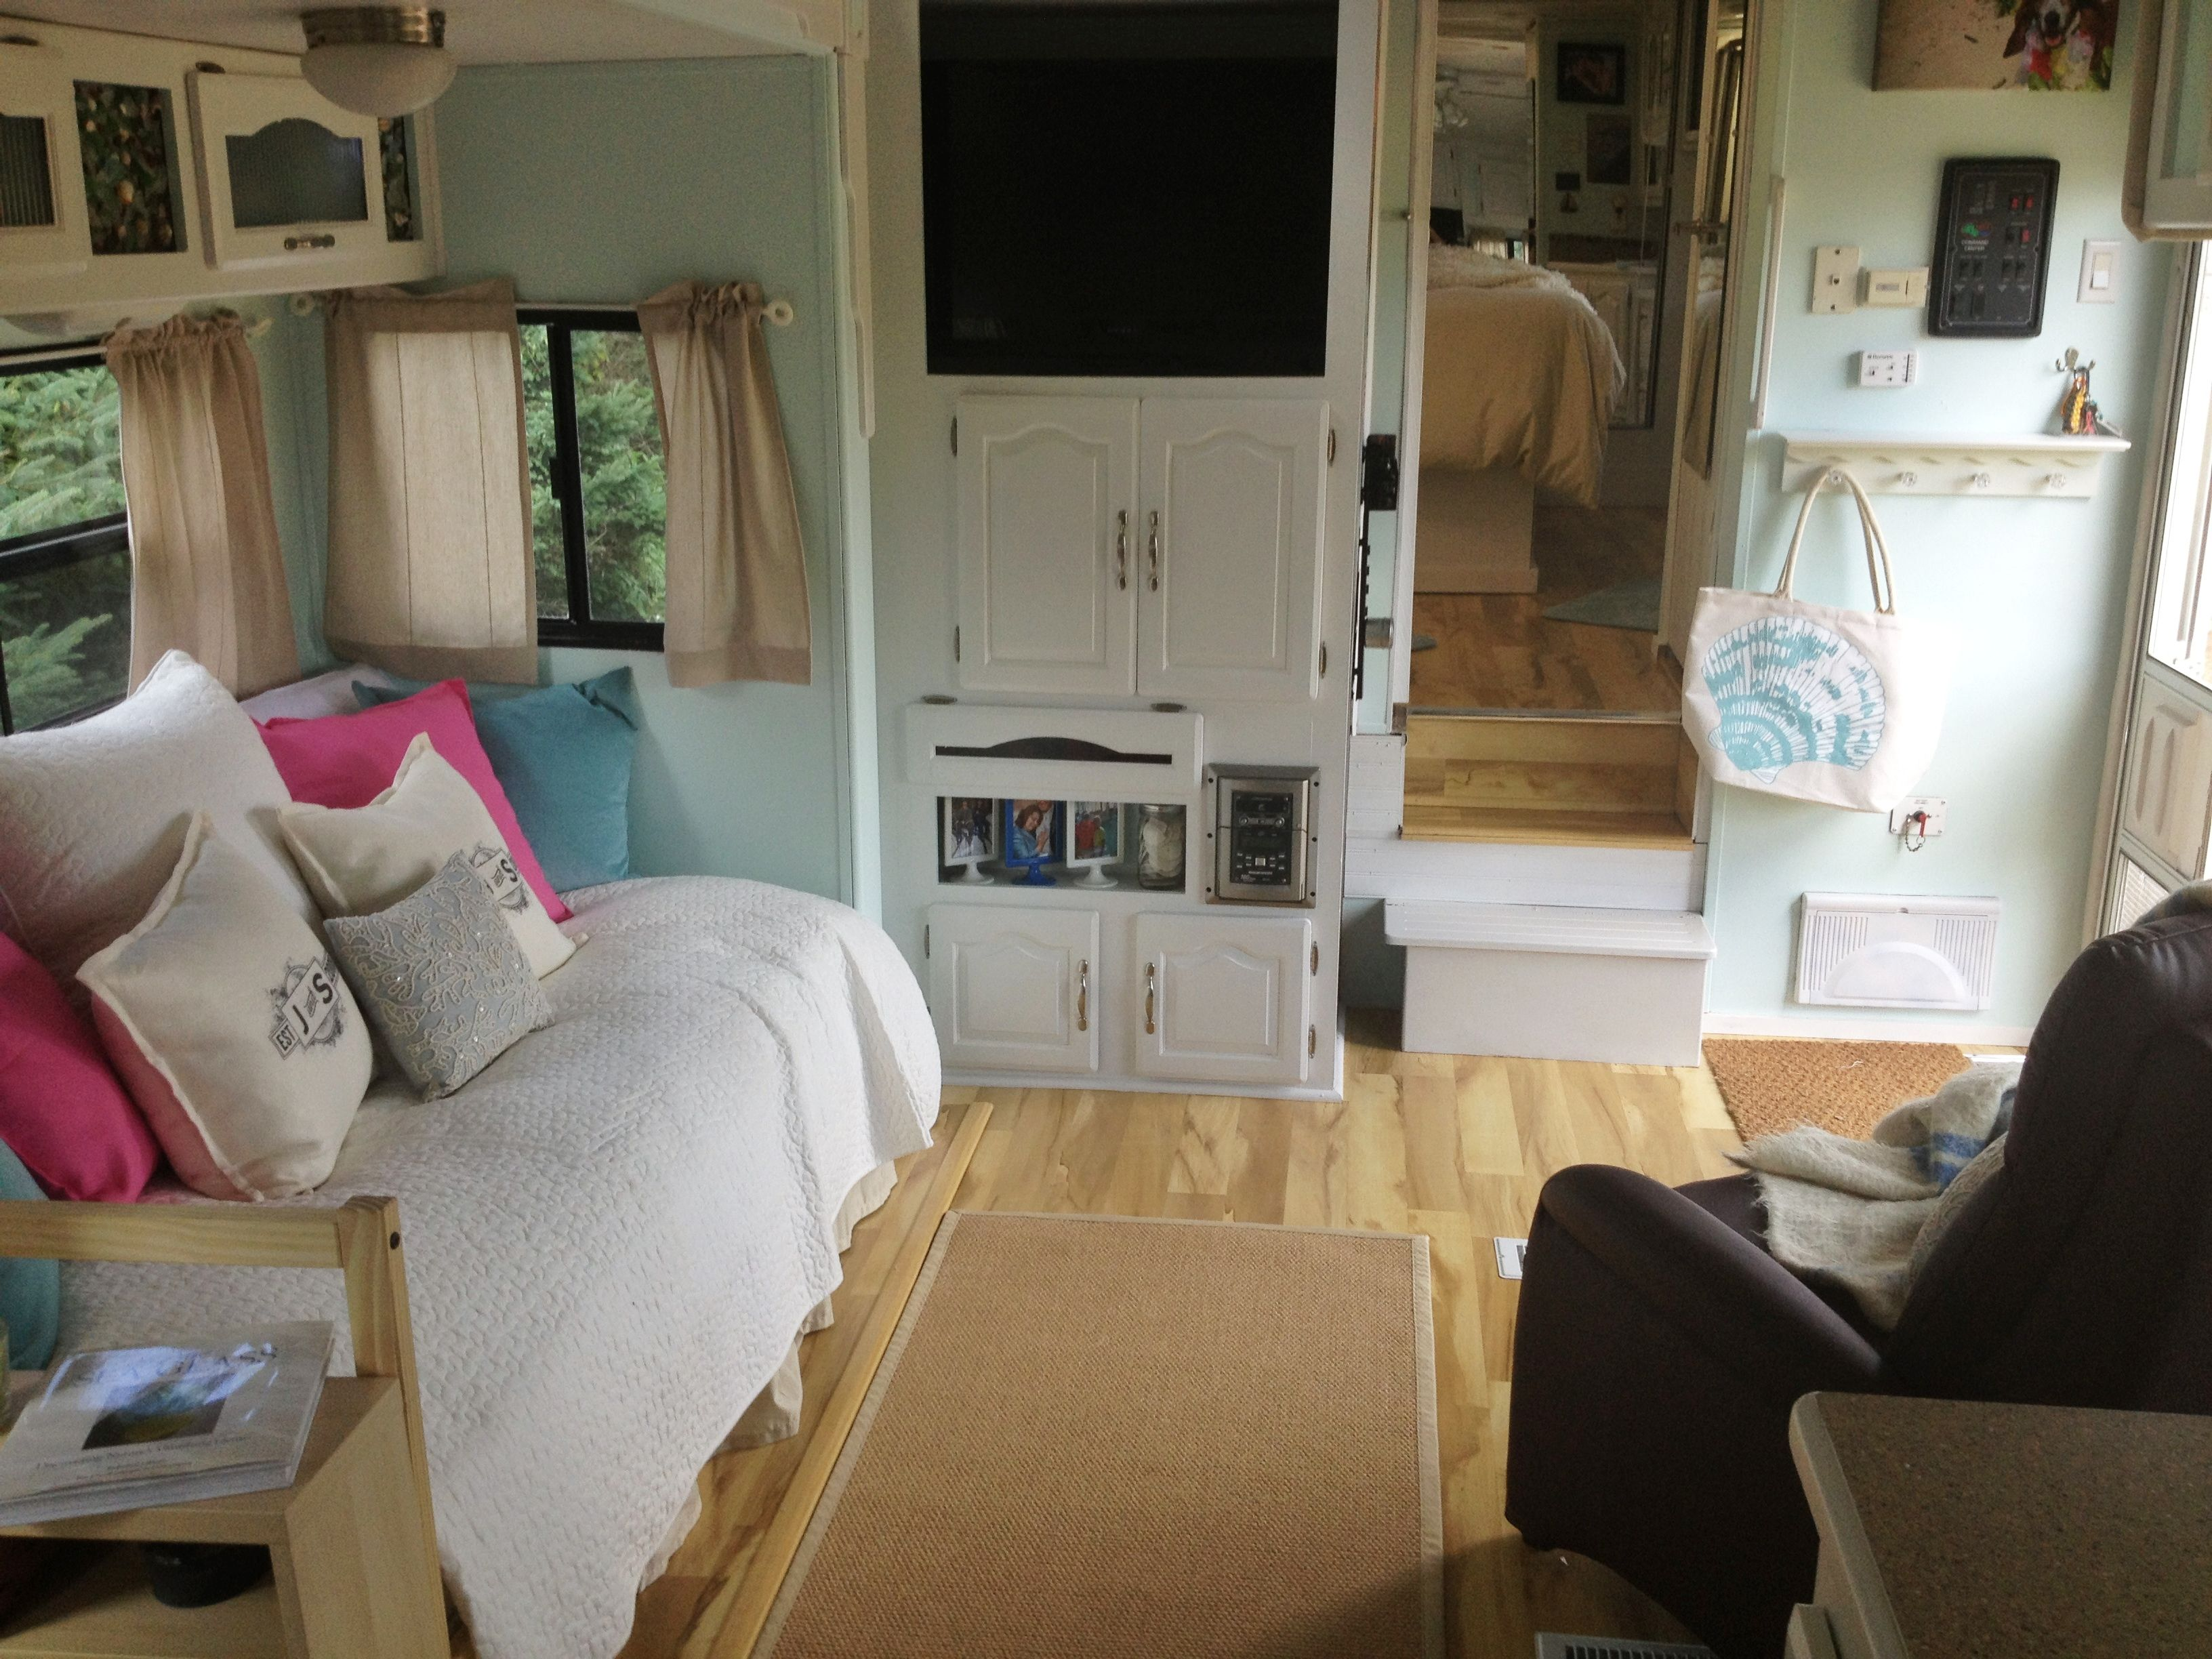 DIY RV Decorating | New Day bed and new kitchen storage area & DIY RV Decorating | New Day bed and new kitchen storage area | RV ...